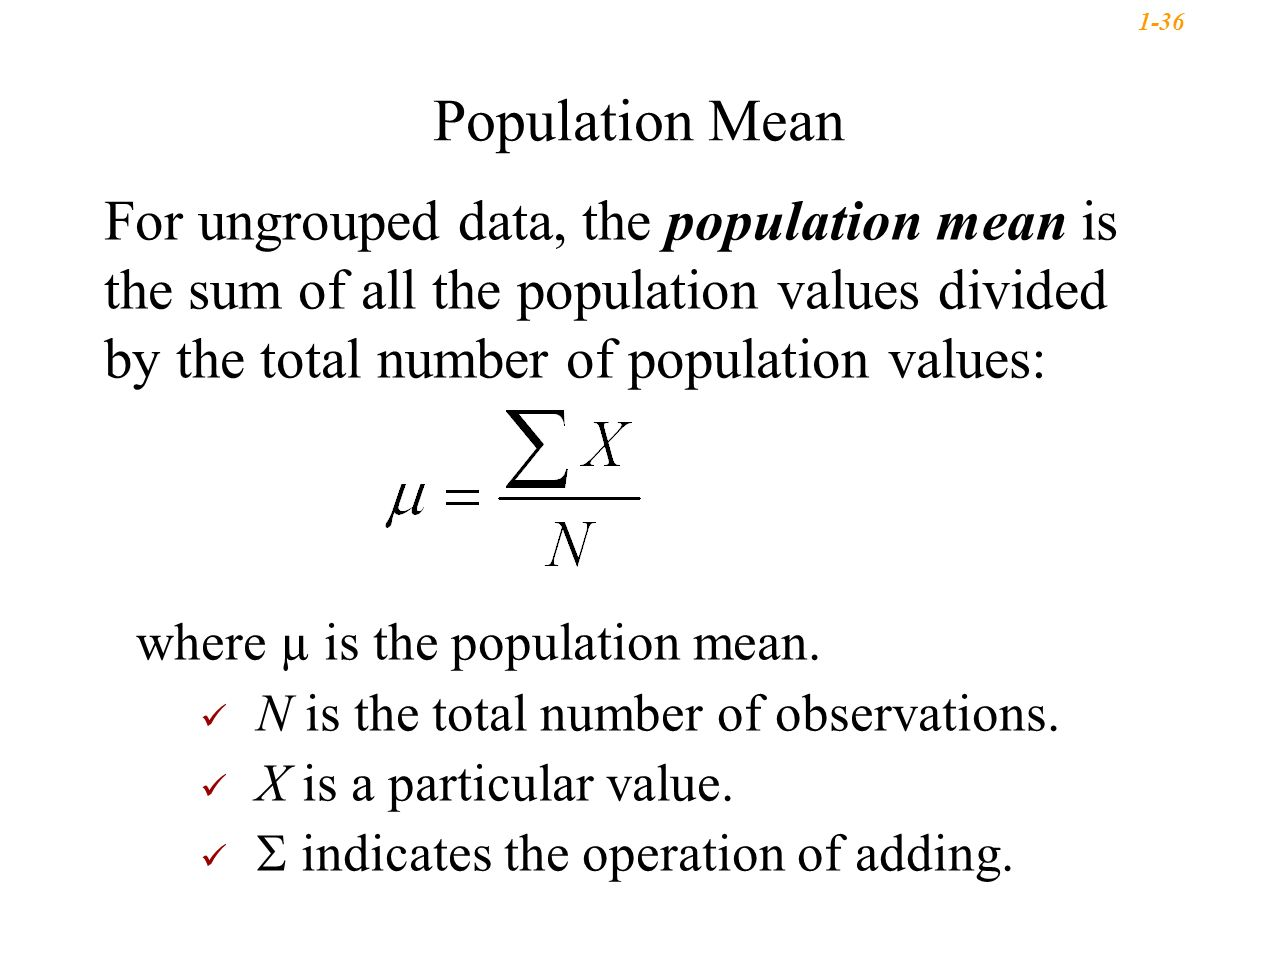 Population Mean For Ungrouped Data, The Population Mean Is The Sum Of All  The Population